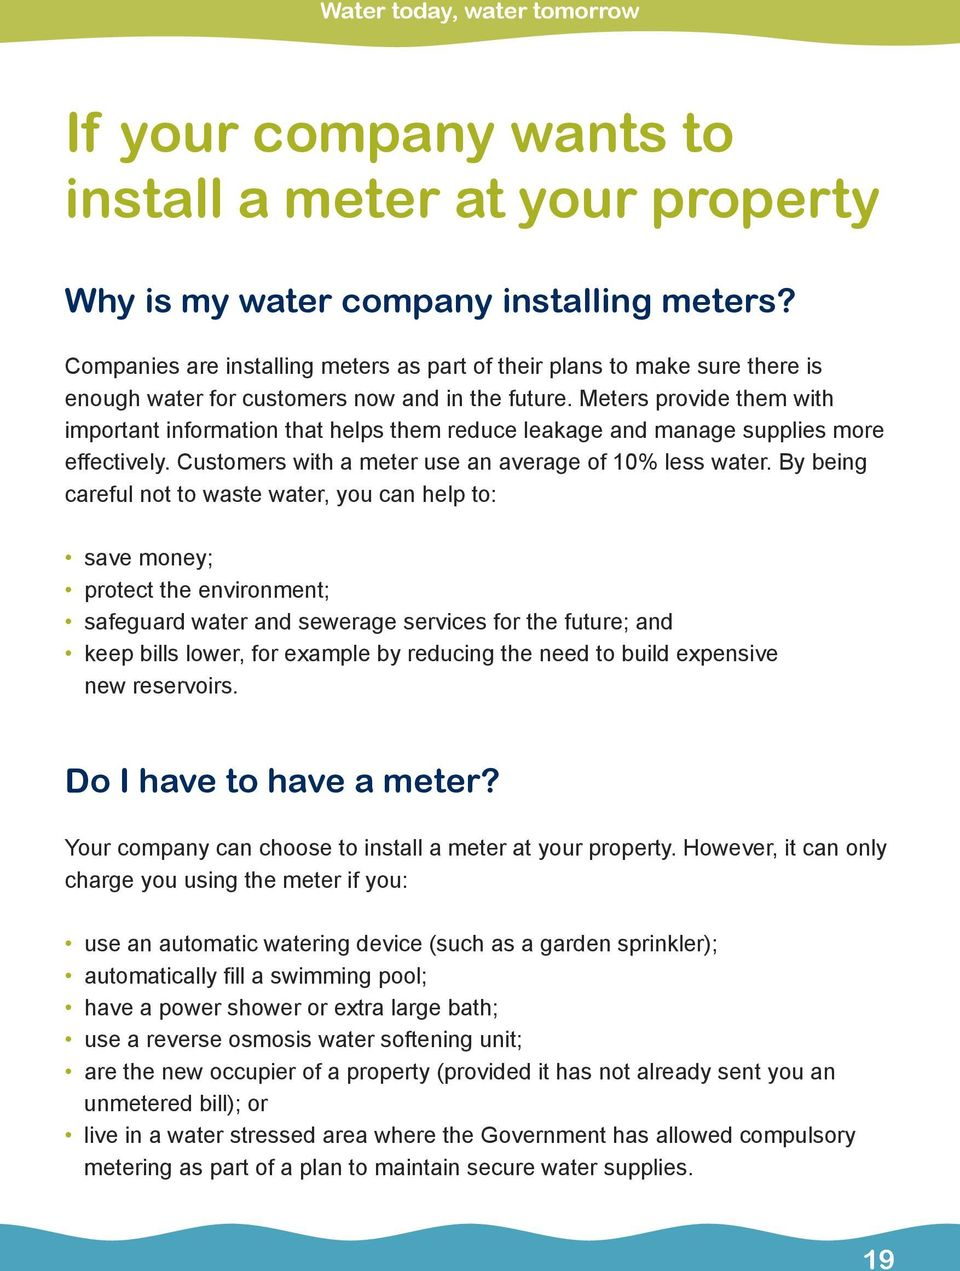 Meters provide them with important information that helps them reduce leakage and manage supplies more effectively. Customers with a meter use an average of 10% less water.